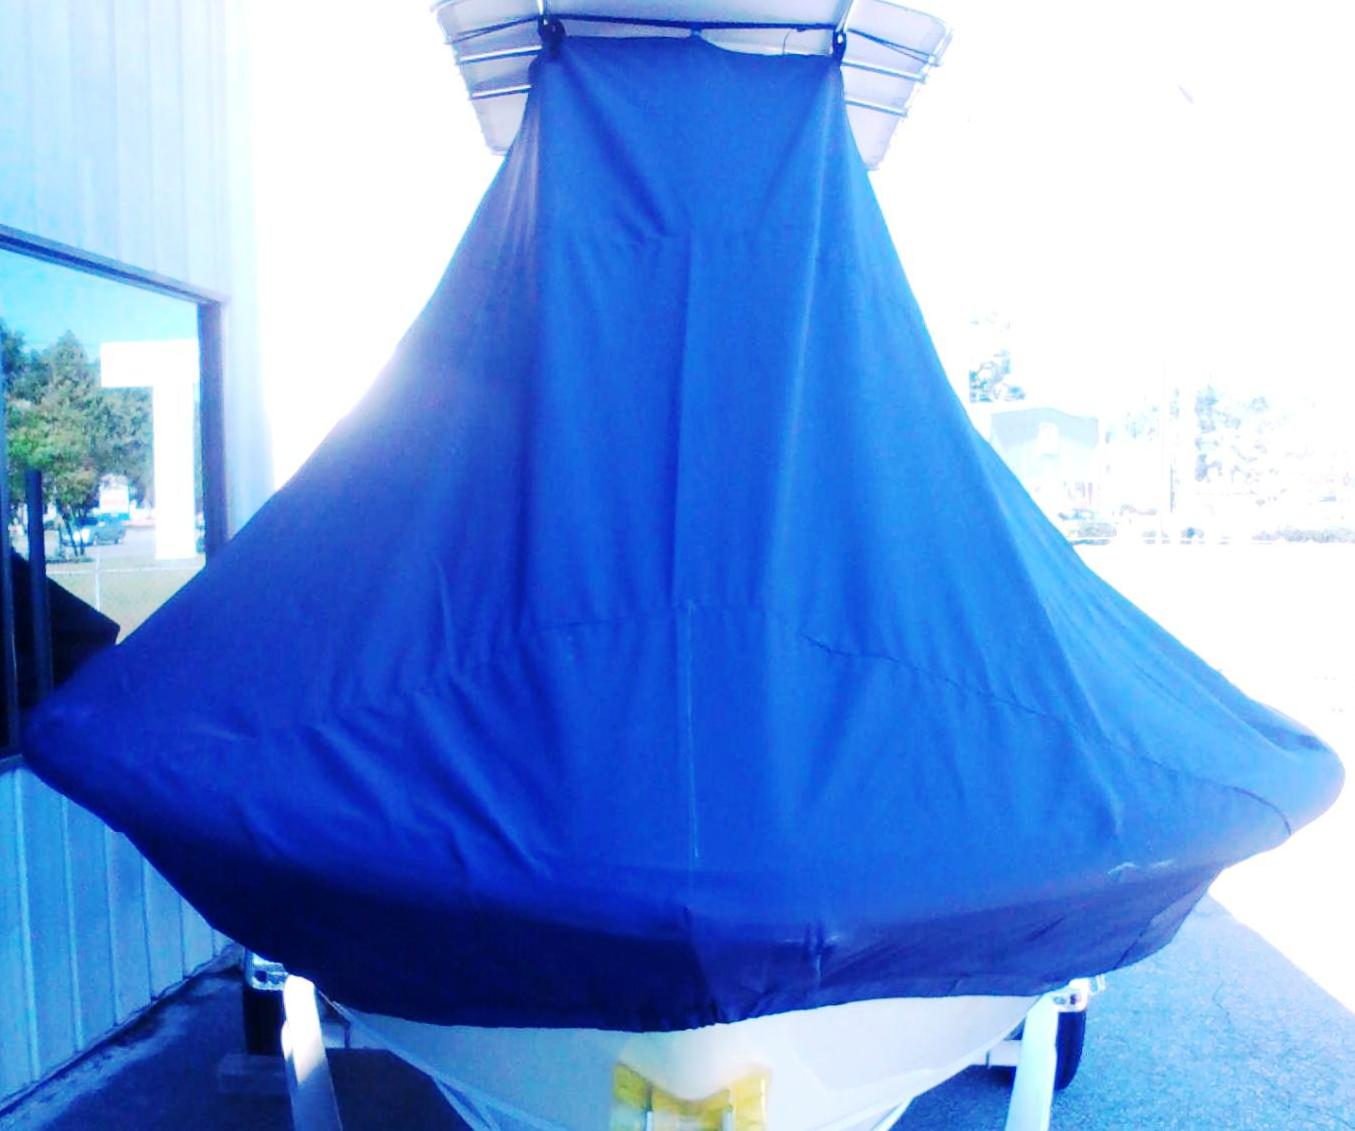 Sportsman Masters Platinum 207, 20xx, TTopCovers™ T-Top boat cover front